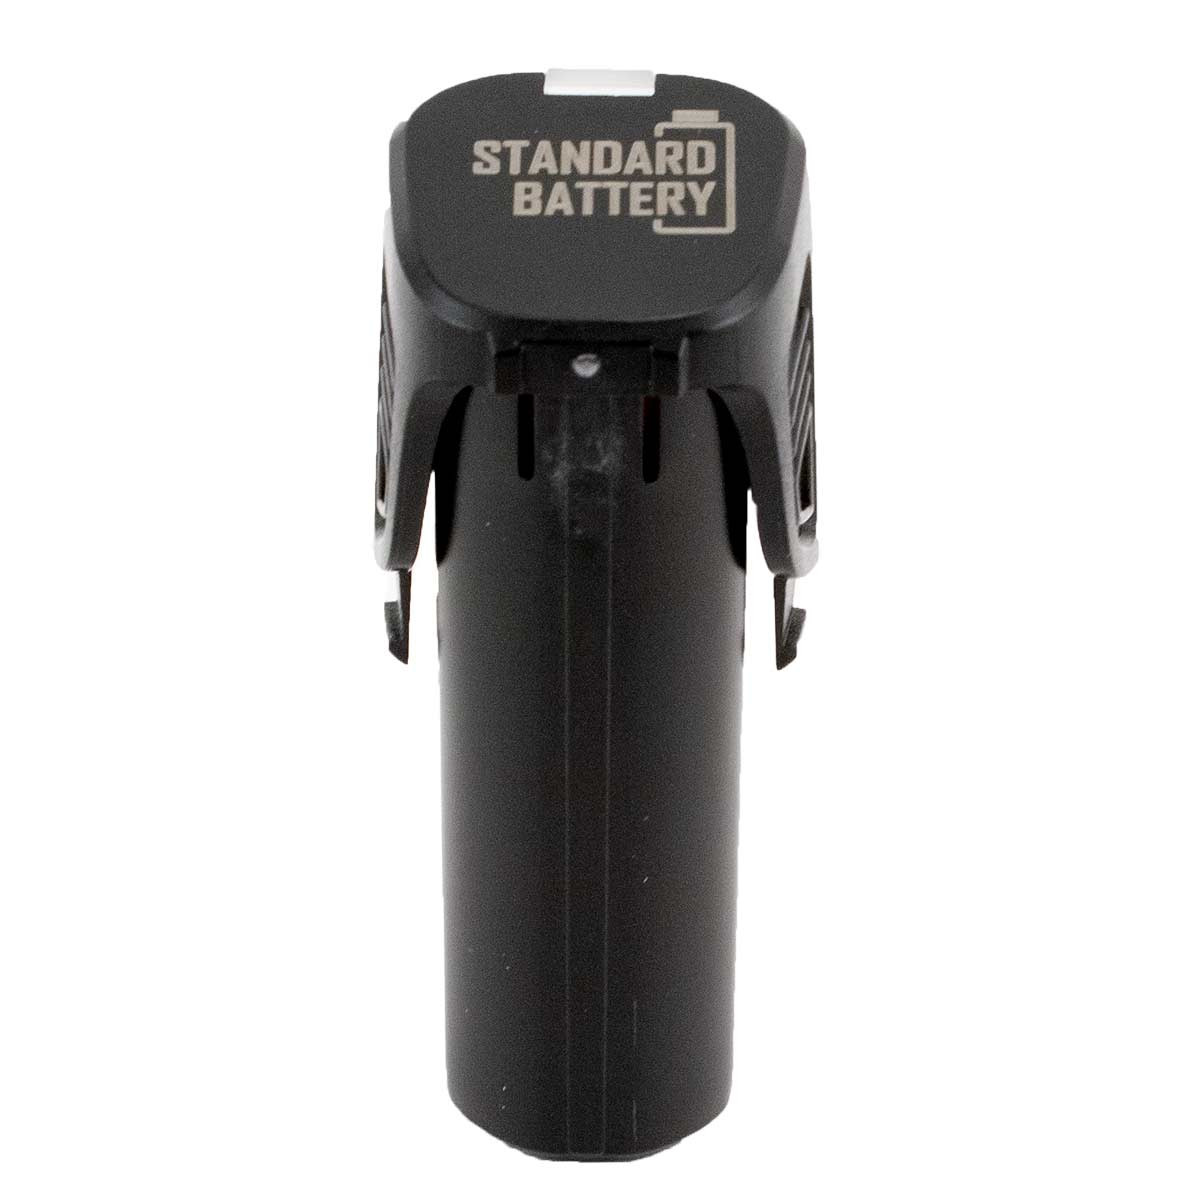 WAHL CREATIVA CLIPPER STANDARD REPLACEMENT BATTERY 8314